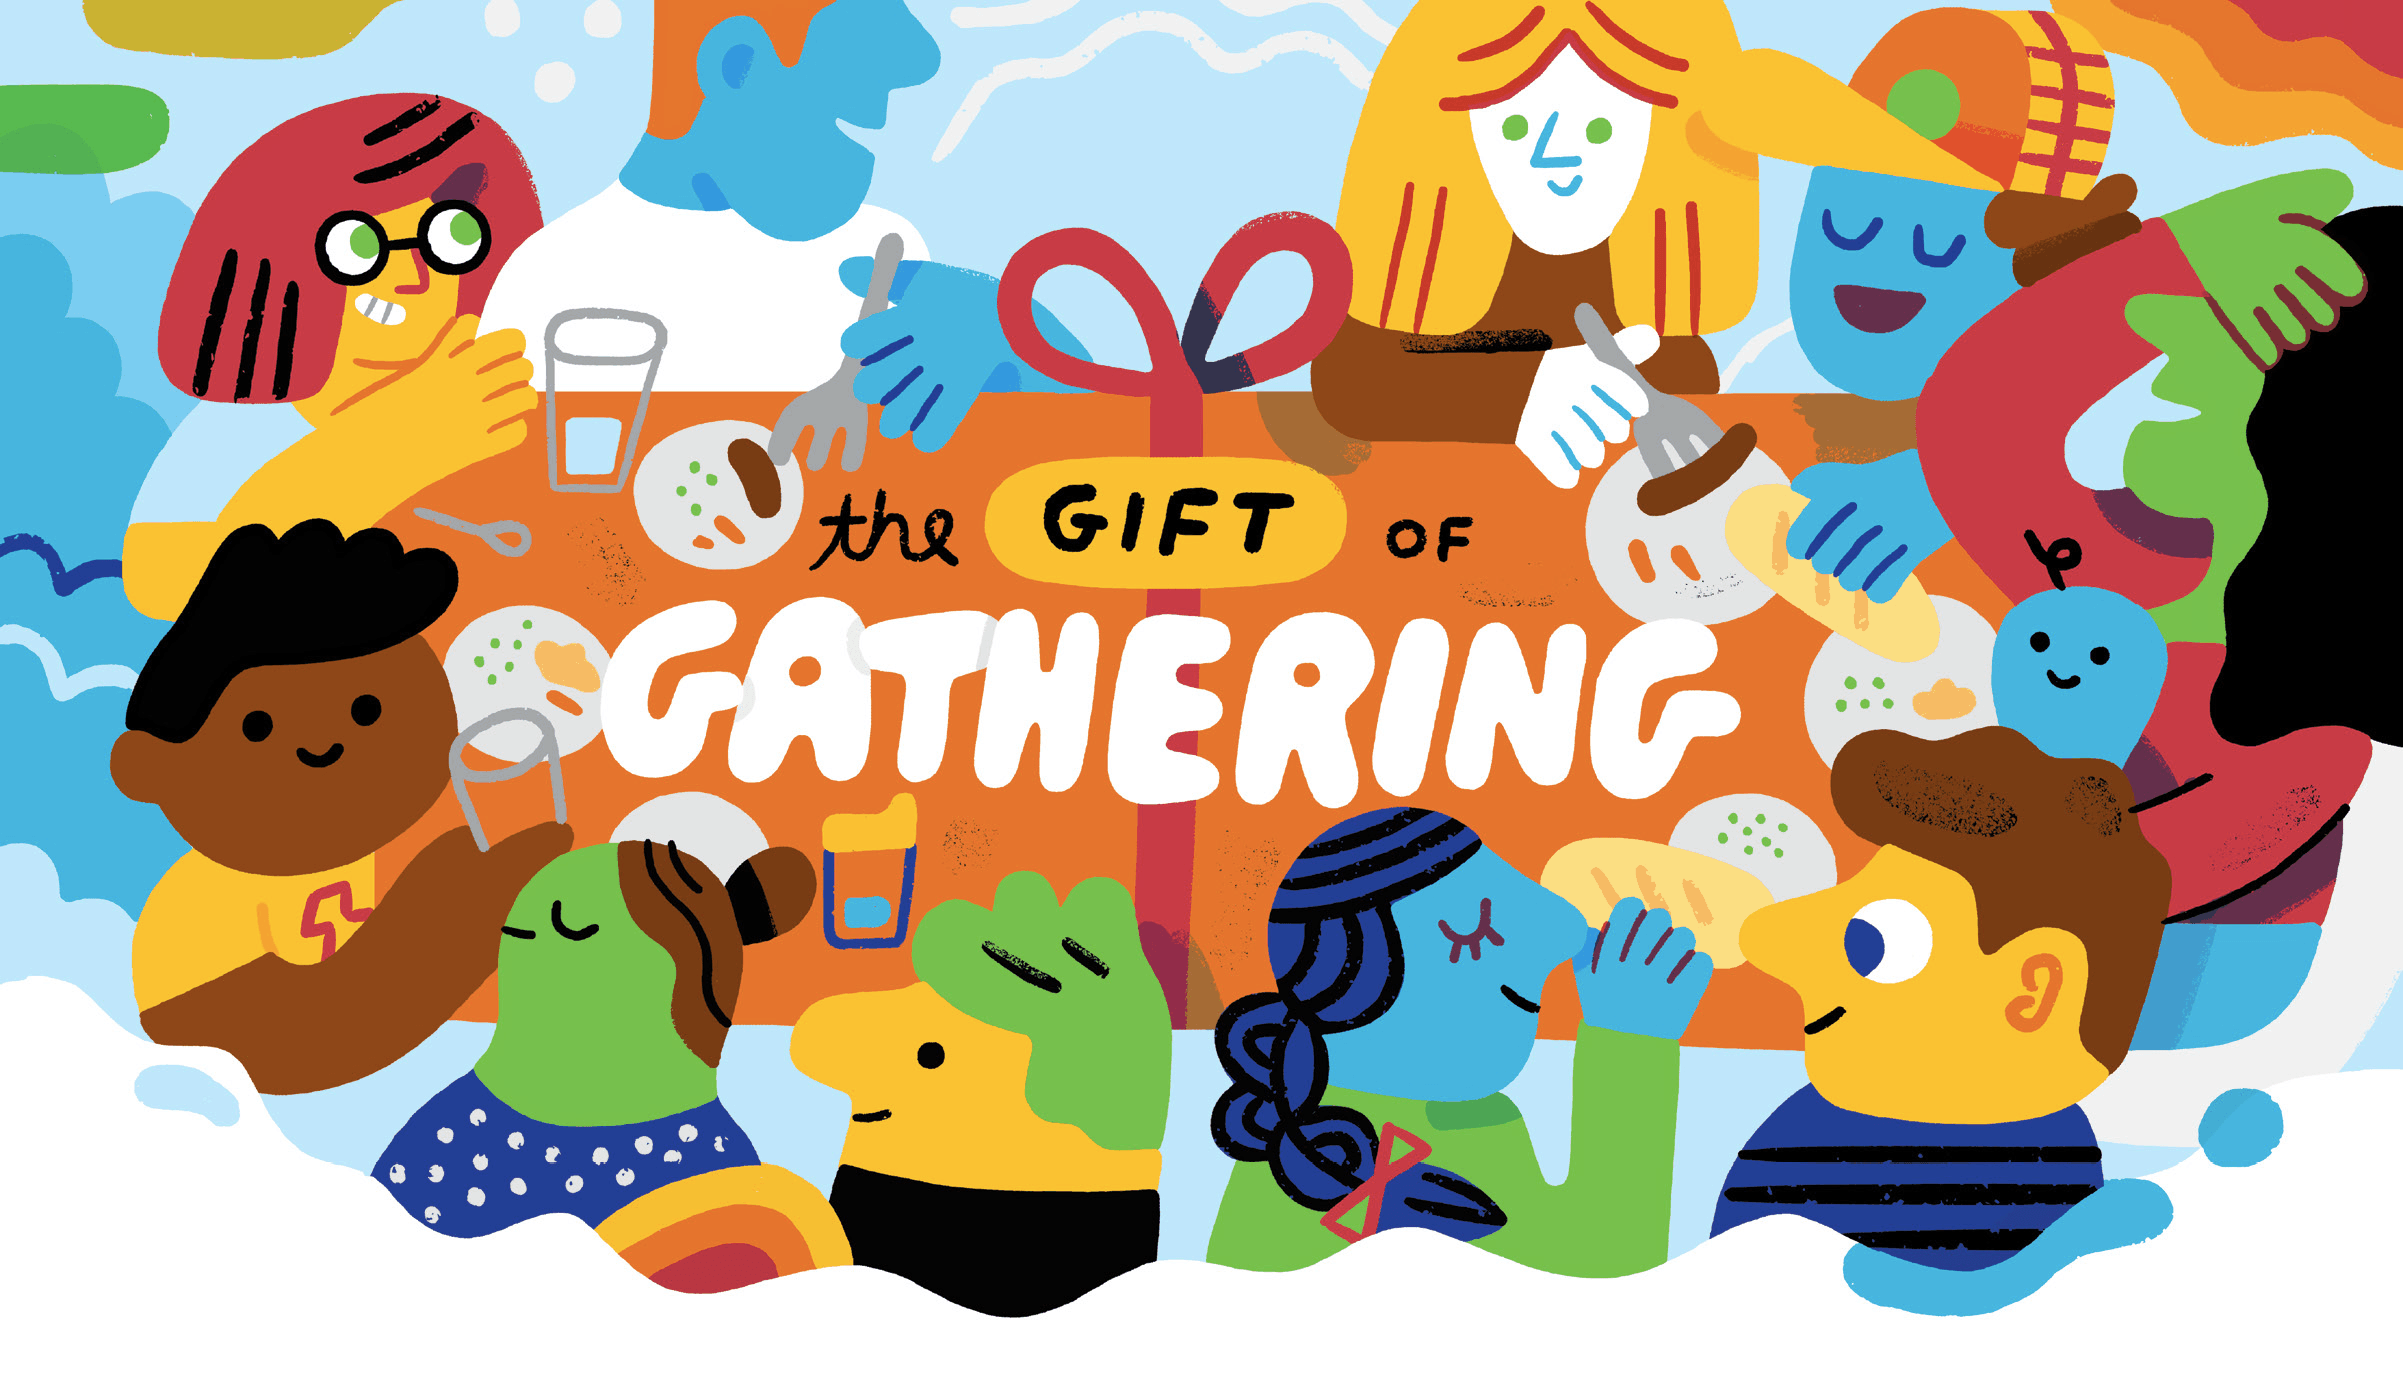 gift of gathering